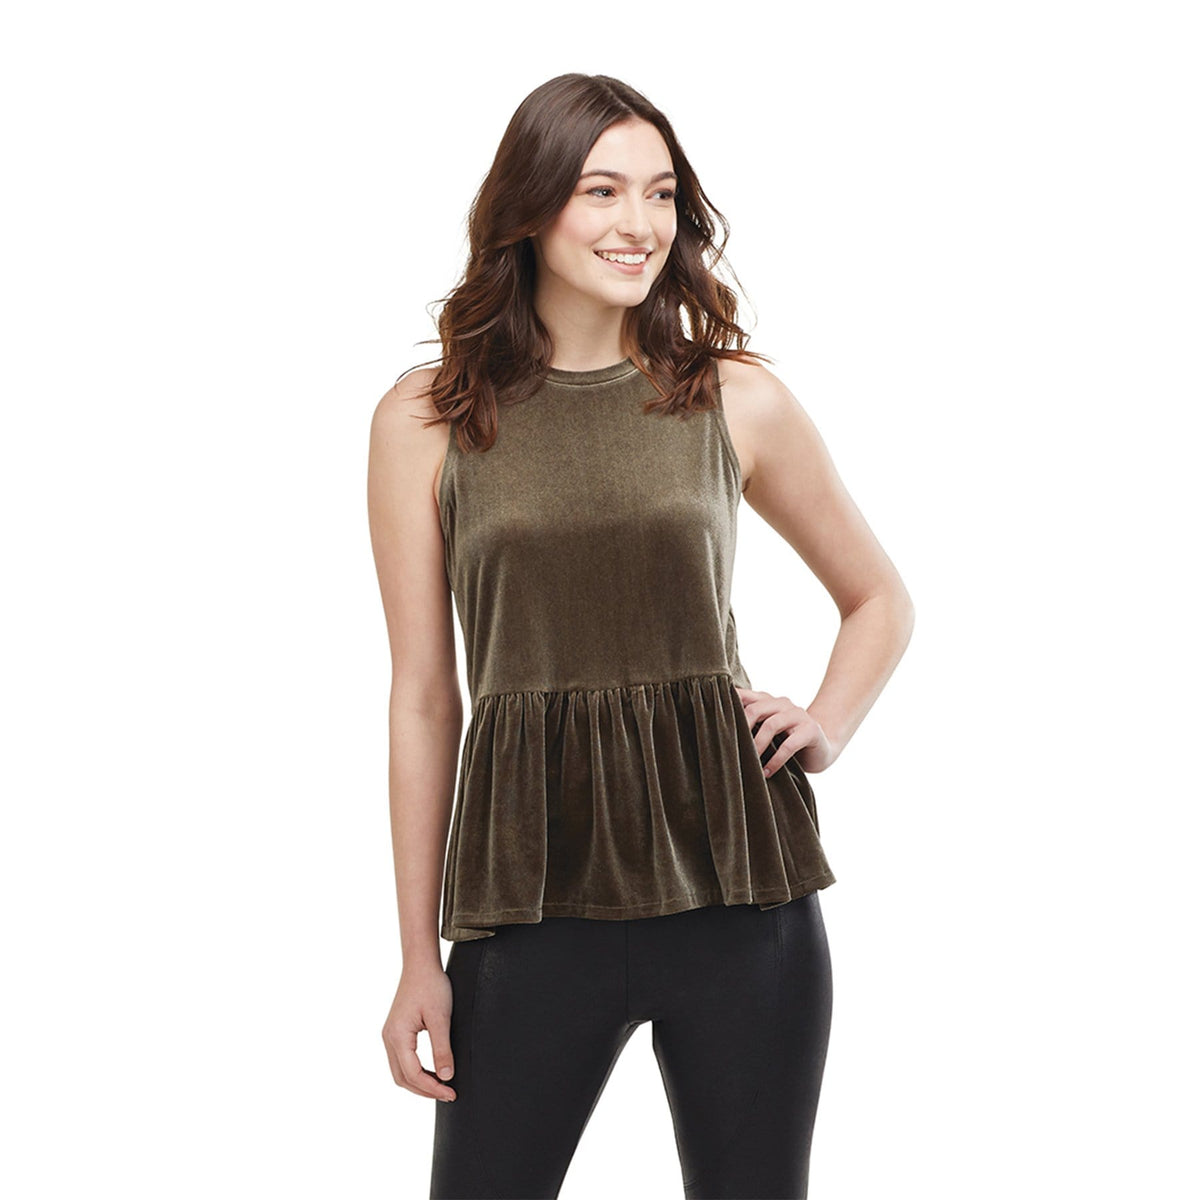 Sable Peplum Tank